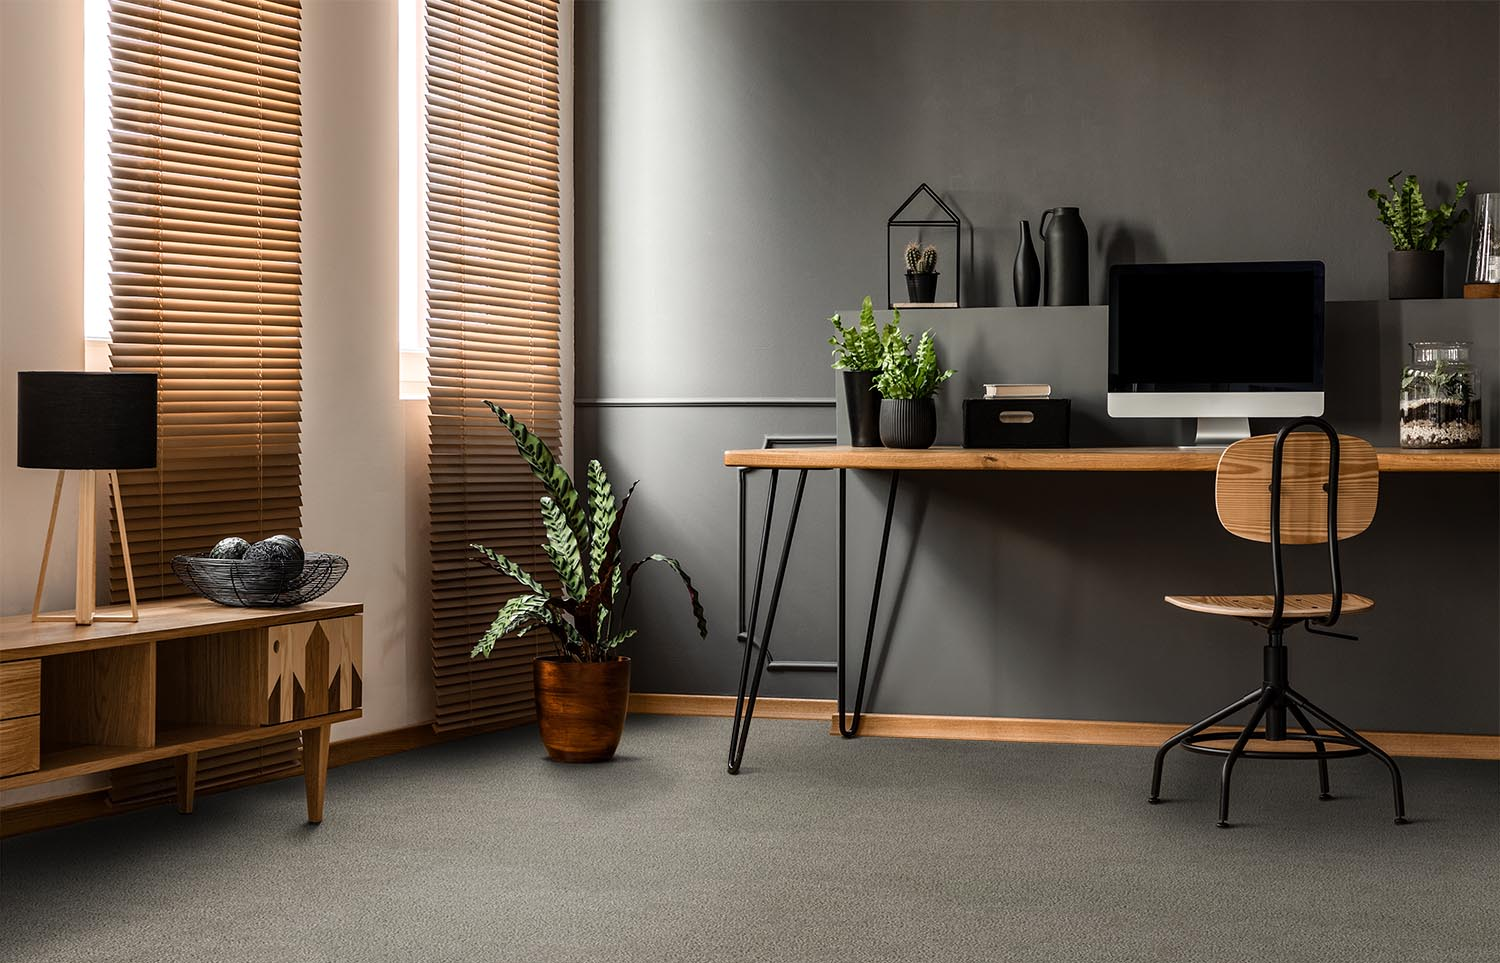 Mantra - M301 - Dusted home office